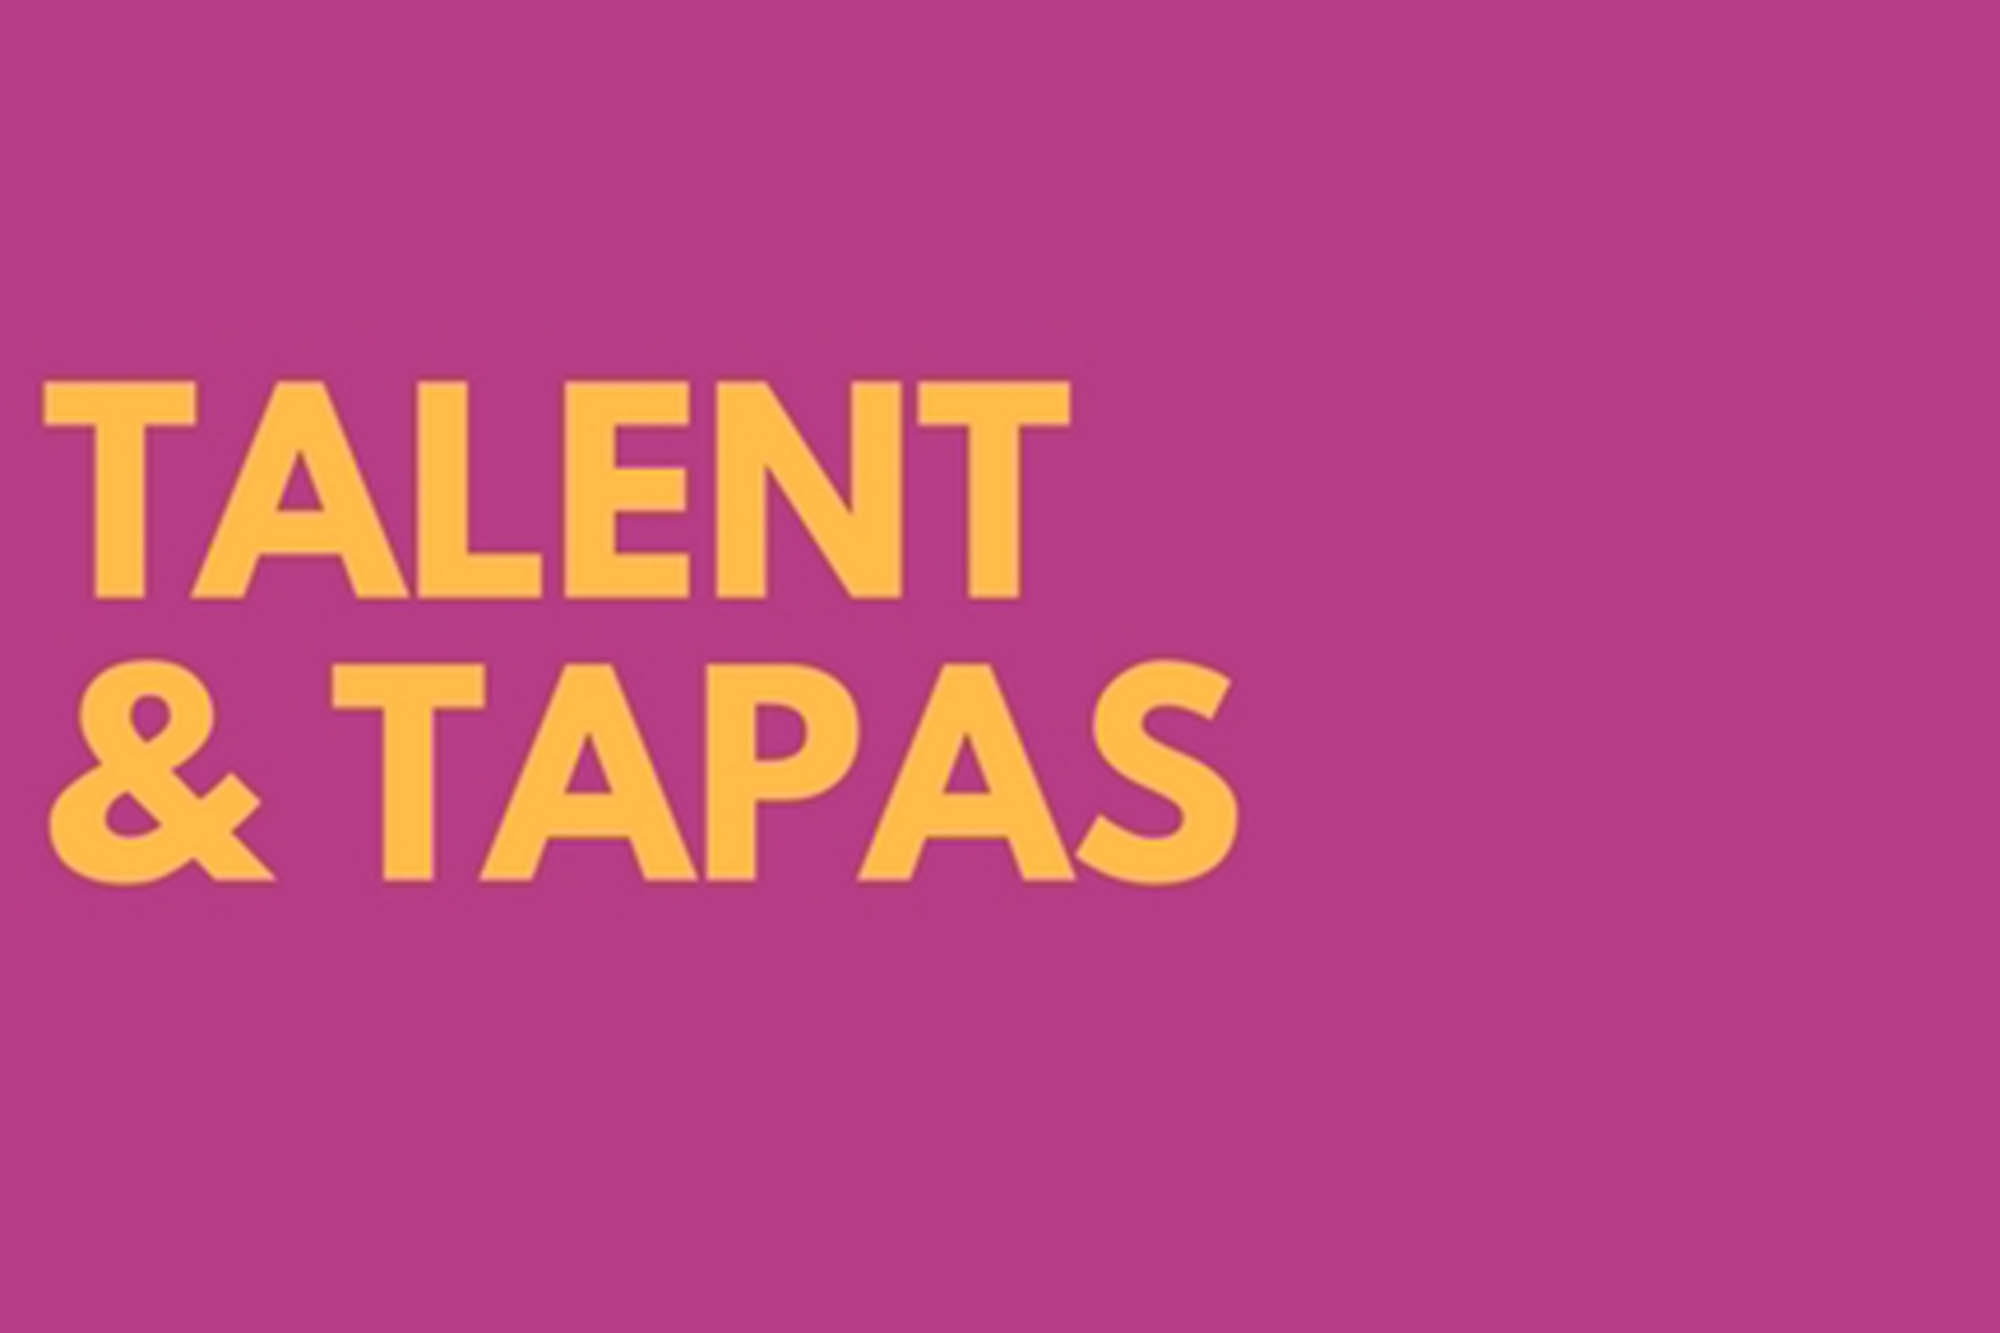 Talent and Tapas